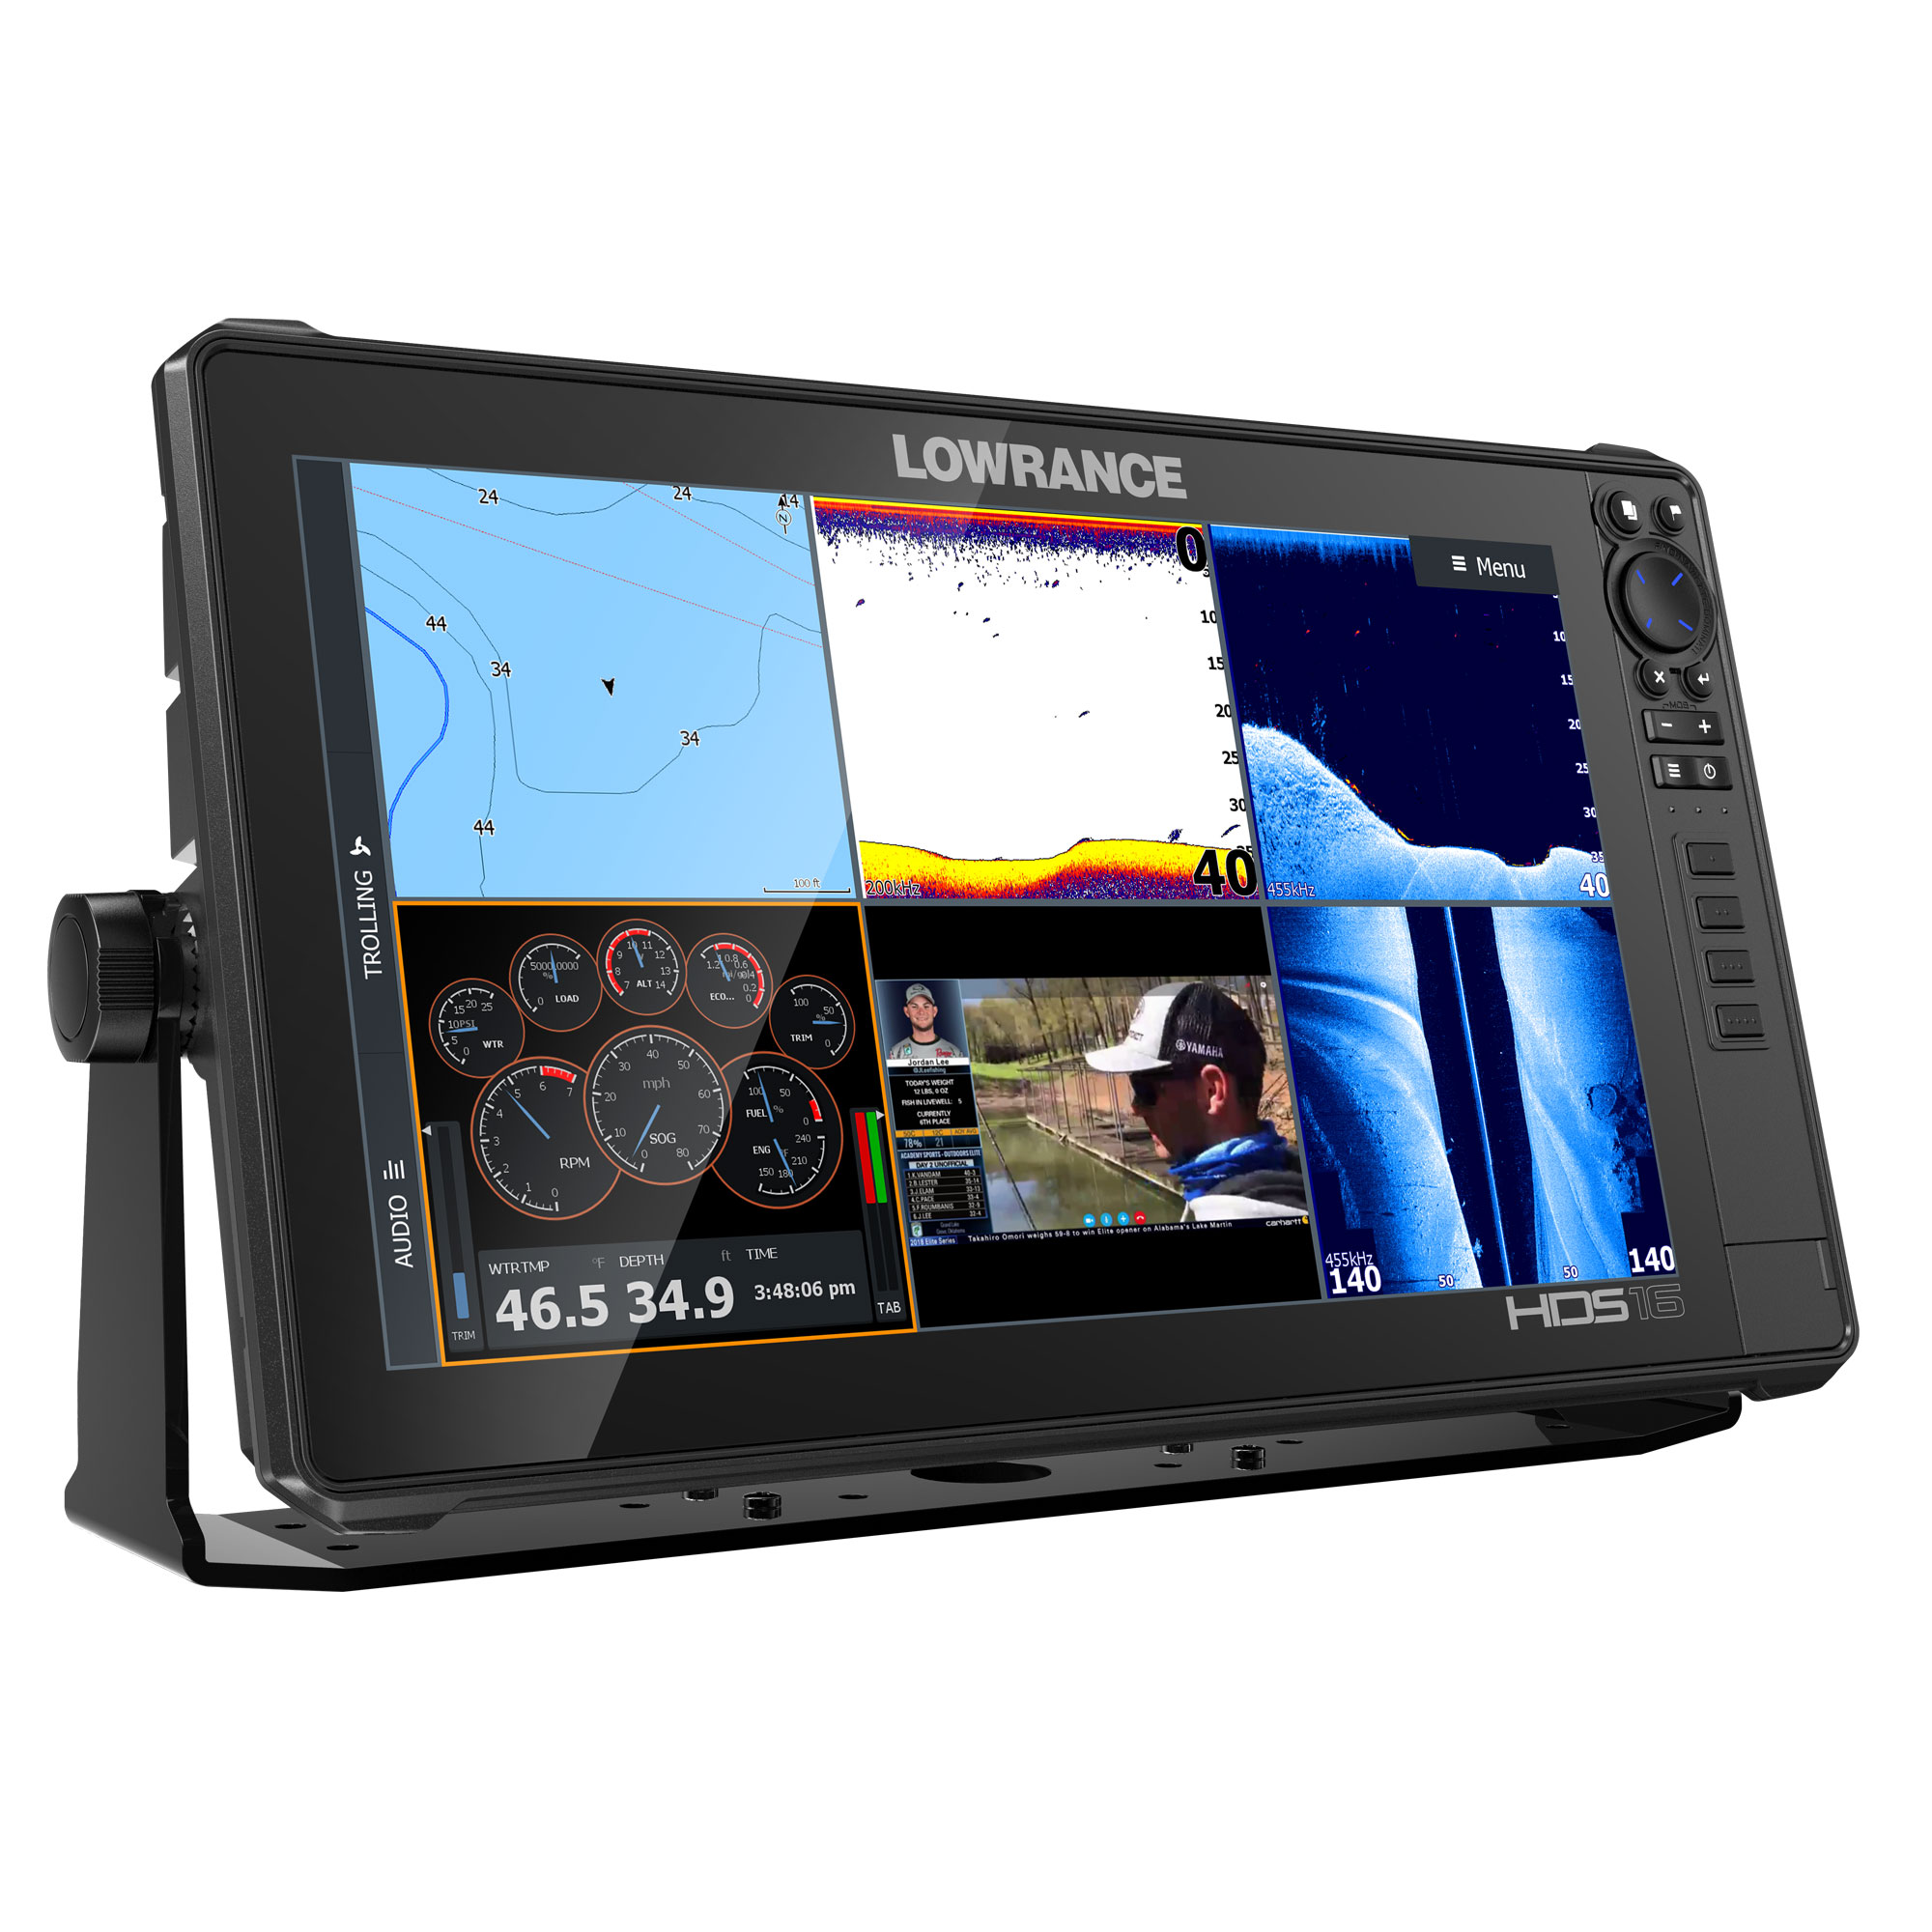 Hds 16 Live With Active Imaging 3 In 1 Transducer Aus Nz Ab Marine Lowrance Sonichub Wiring Diagram Photo Gallery